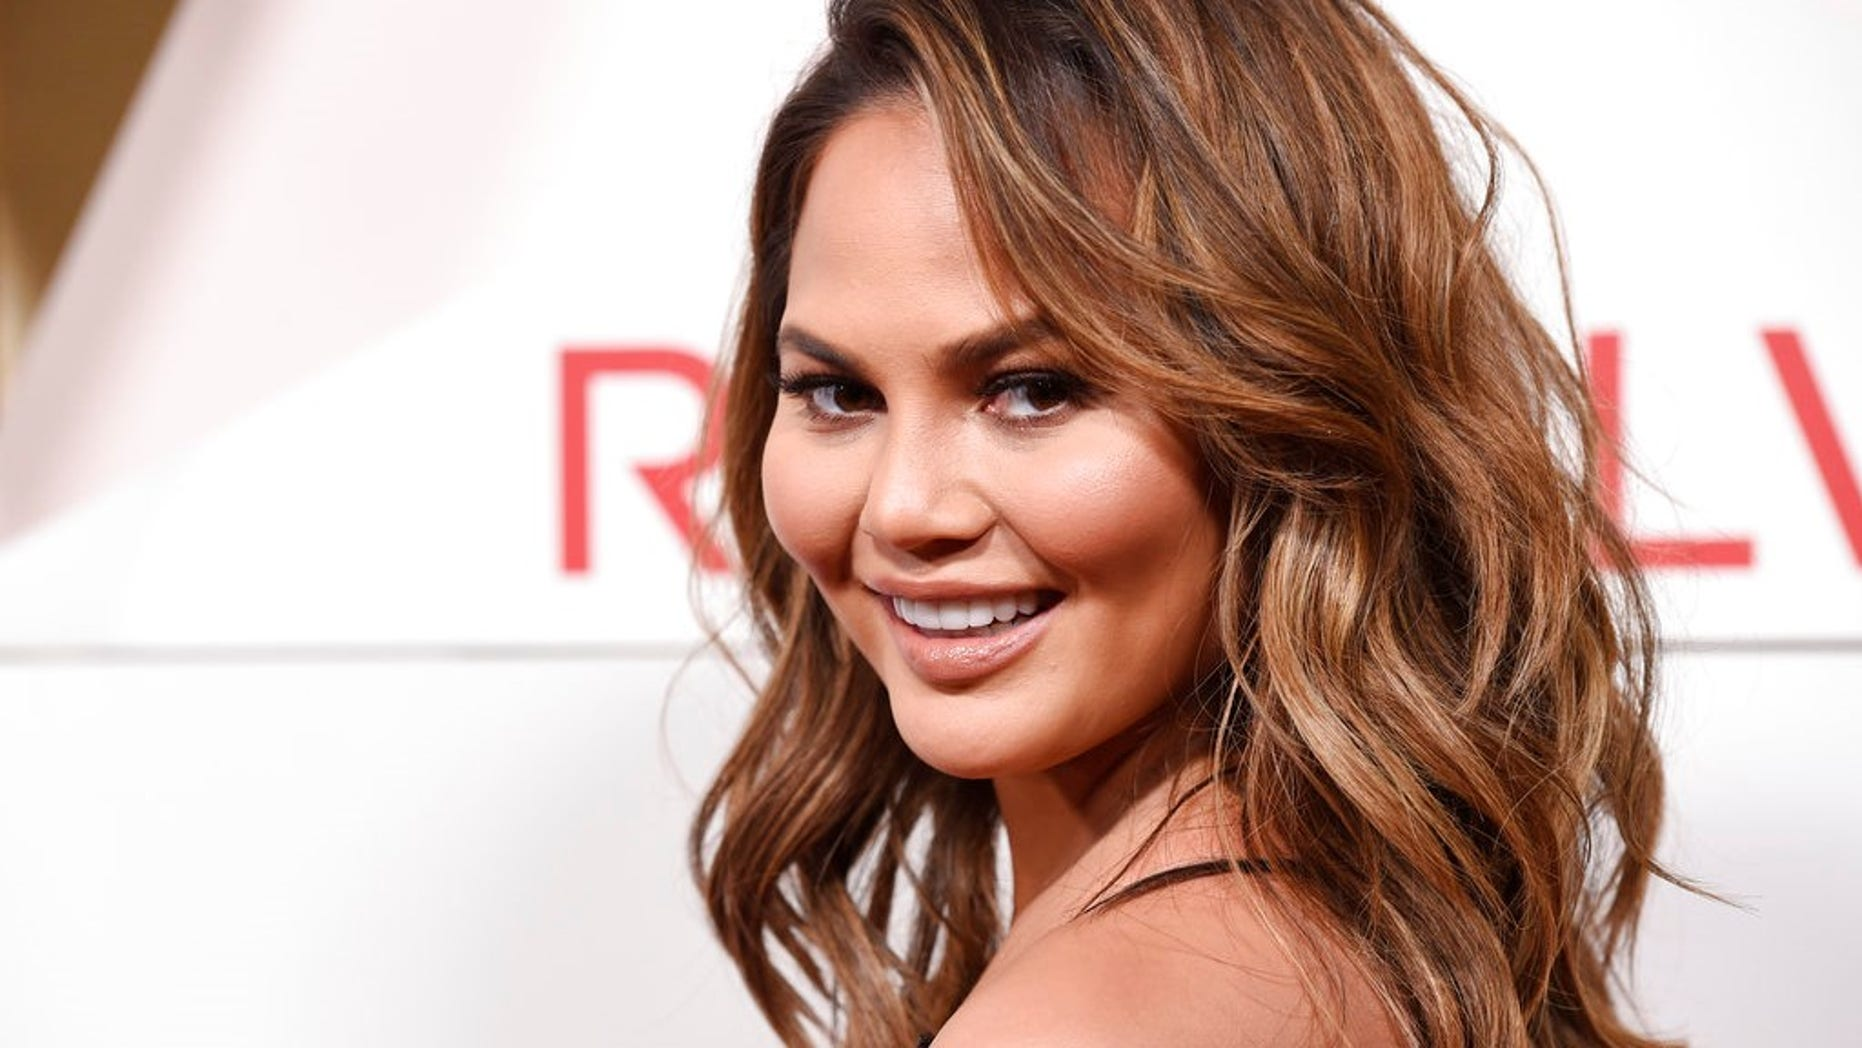 Chrissy Teigen said people have been mispronouncing her last name for years and she hasn't corrected them.